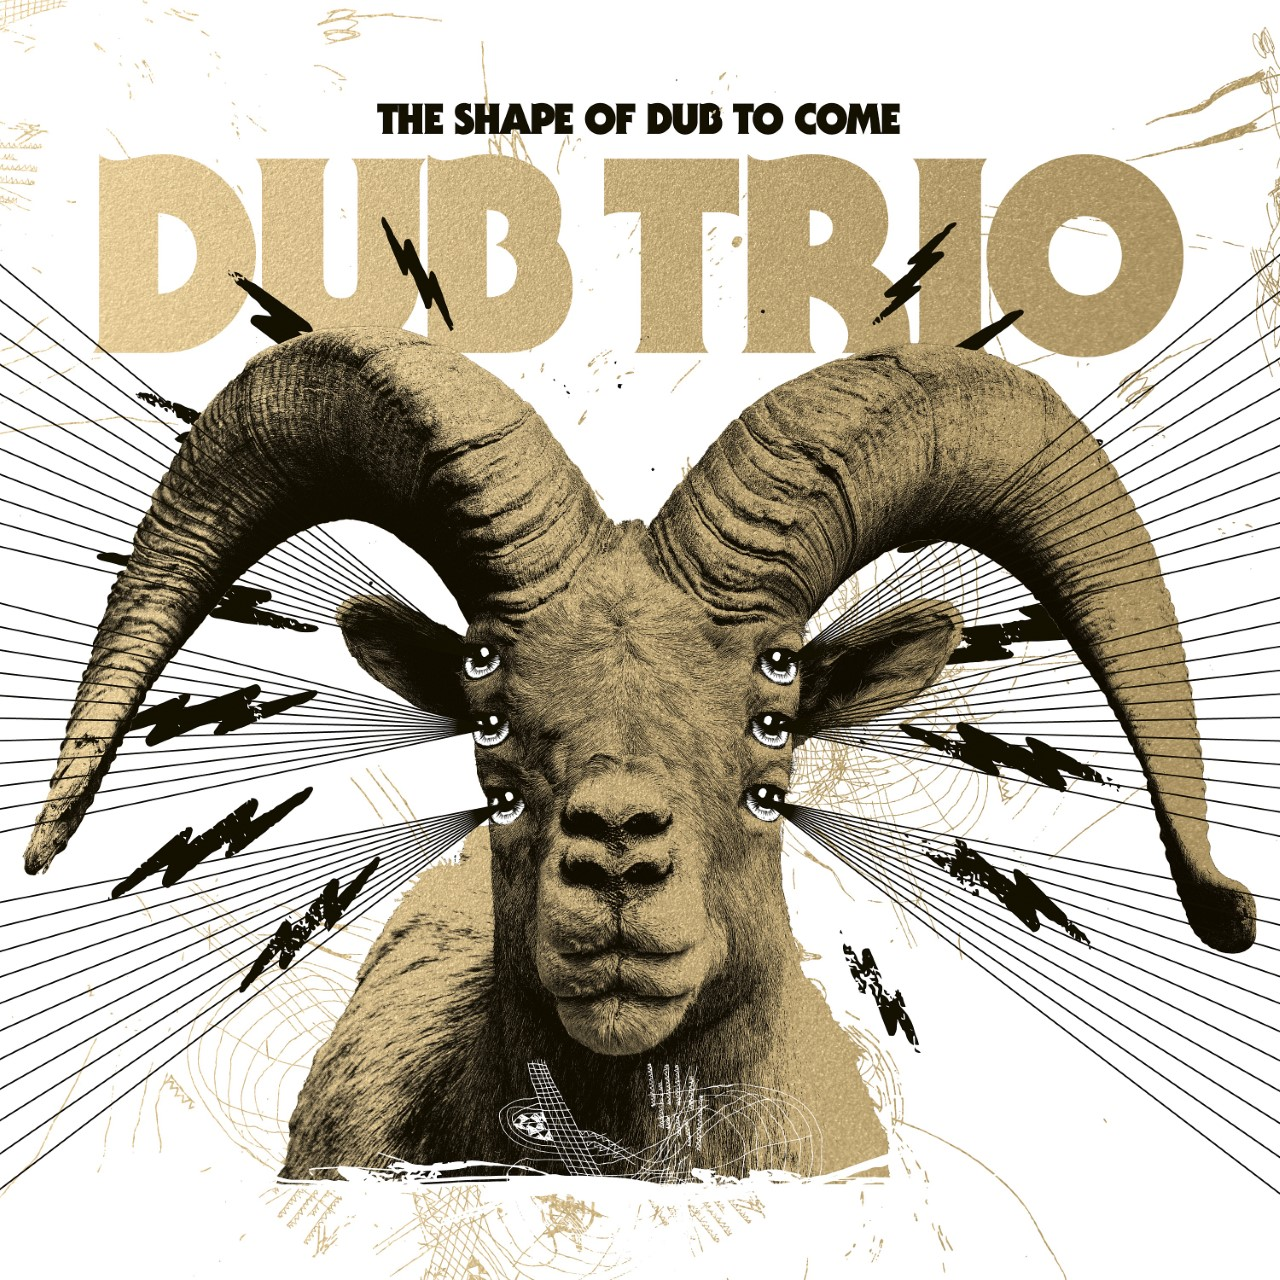 Dub Trio - The Shape of Dub To Come  Release Date: 4/26/19  Devices Used:  Dunes  /  Palisades  /  Disaster Transport SR  /  Bit Commander  /  Talons